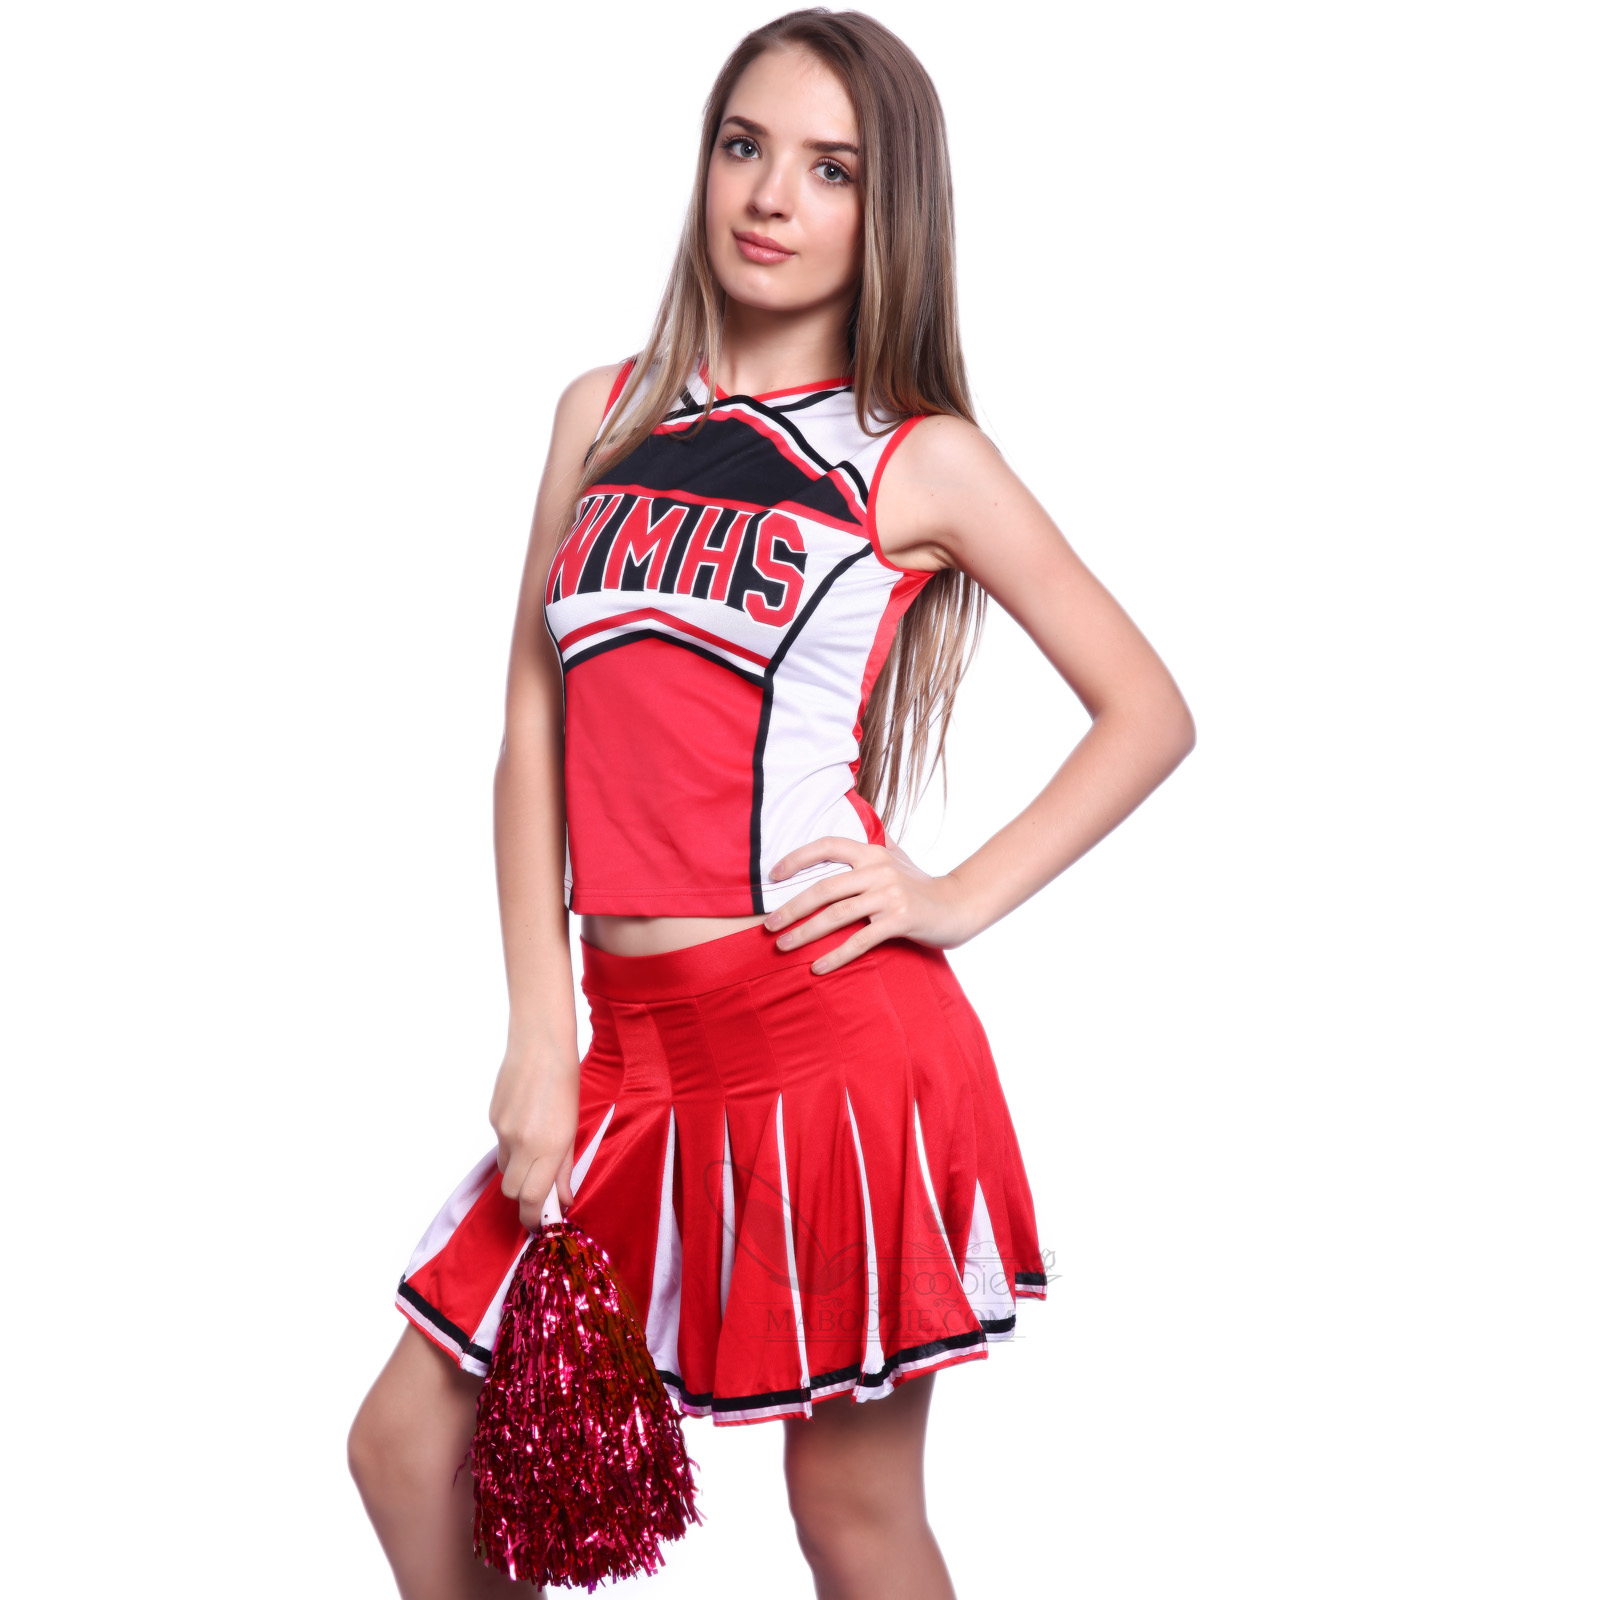 Glee high school musical cheerleader costumes dress clothes outfit item specifics solutioingenieria Images